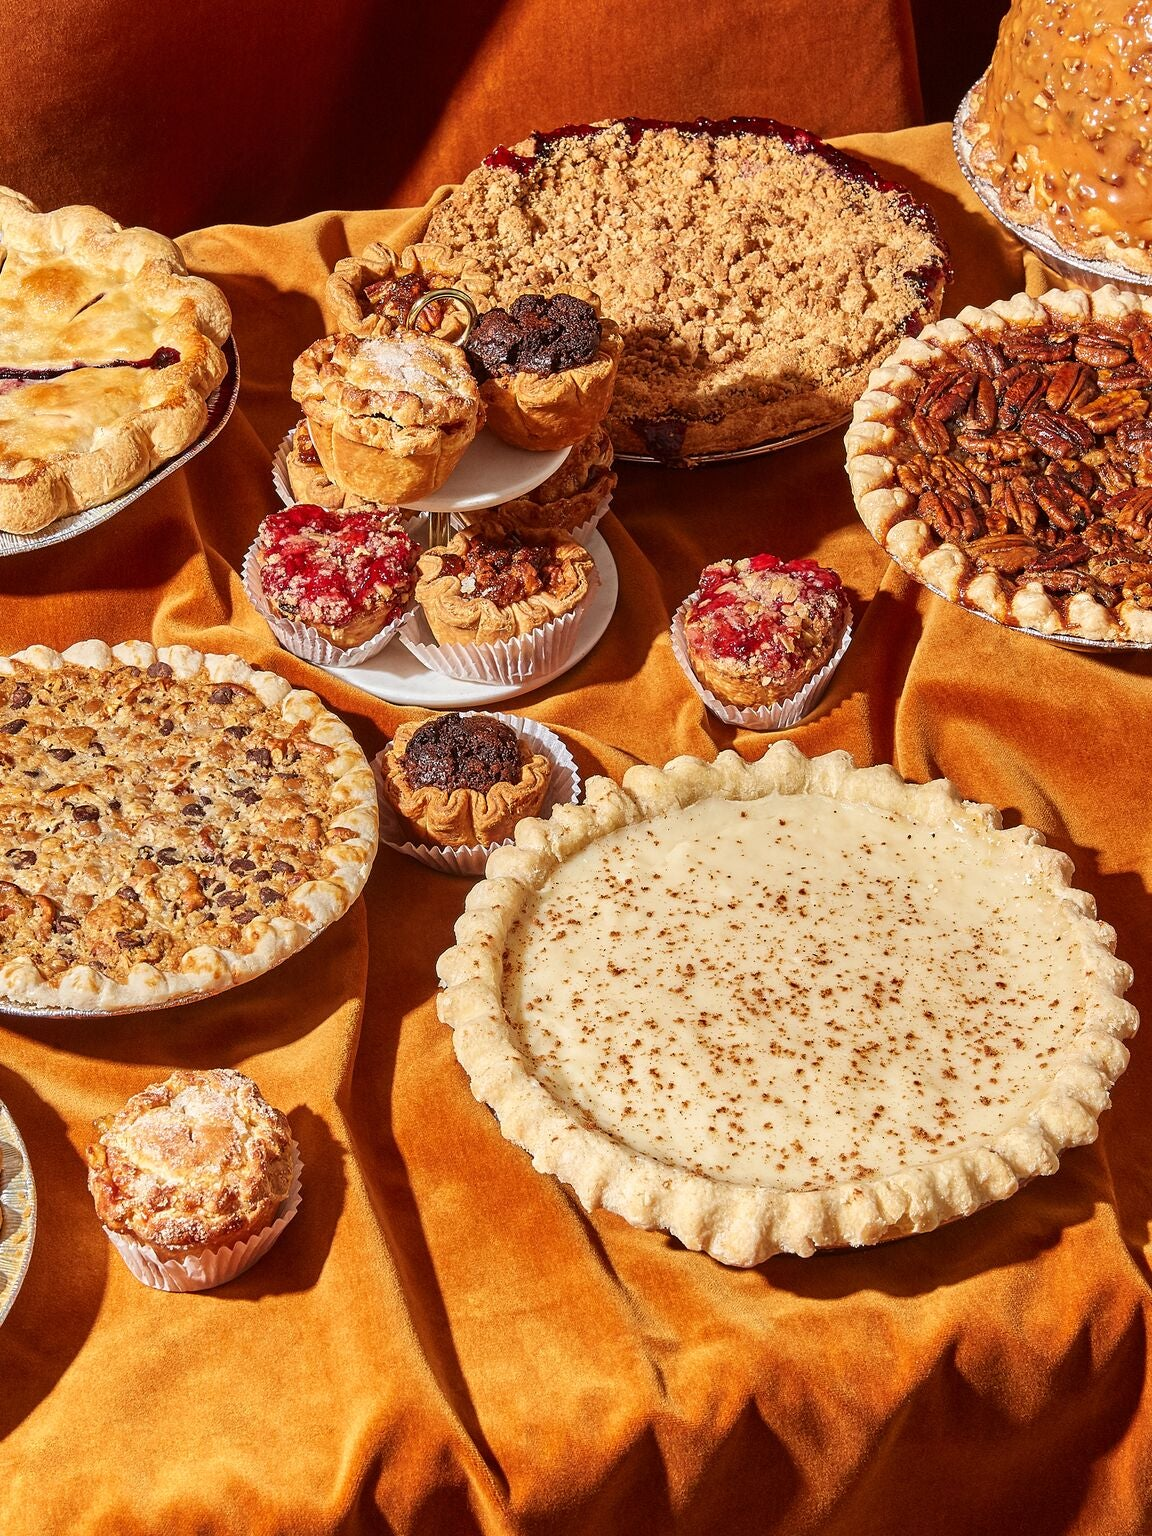 The 7 Best Mail-Order Pies for Those Who Can't Bake